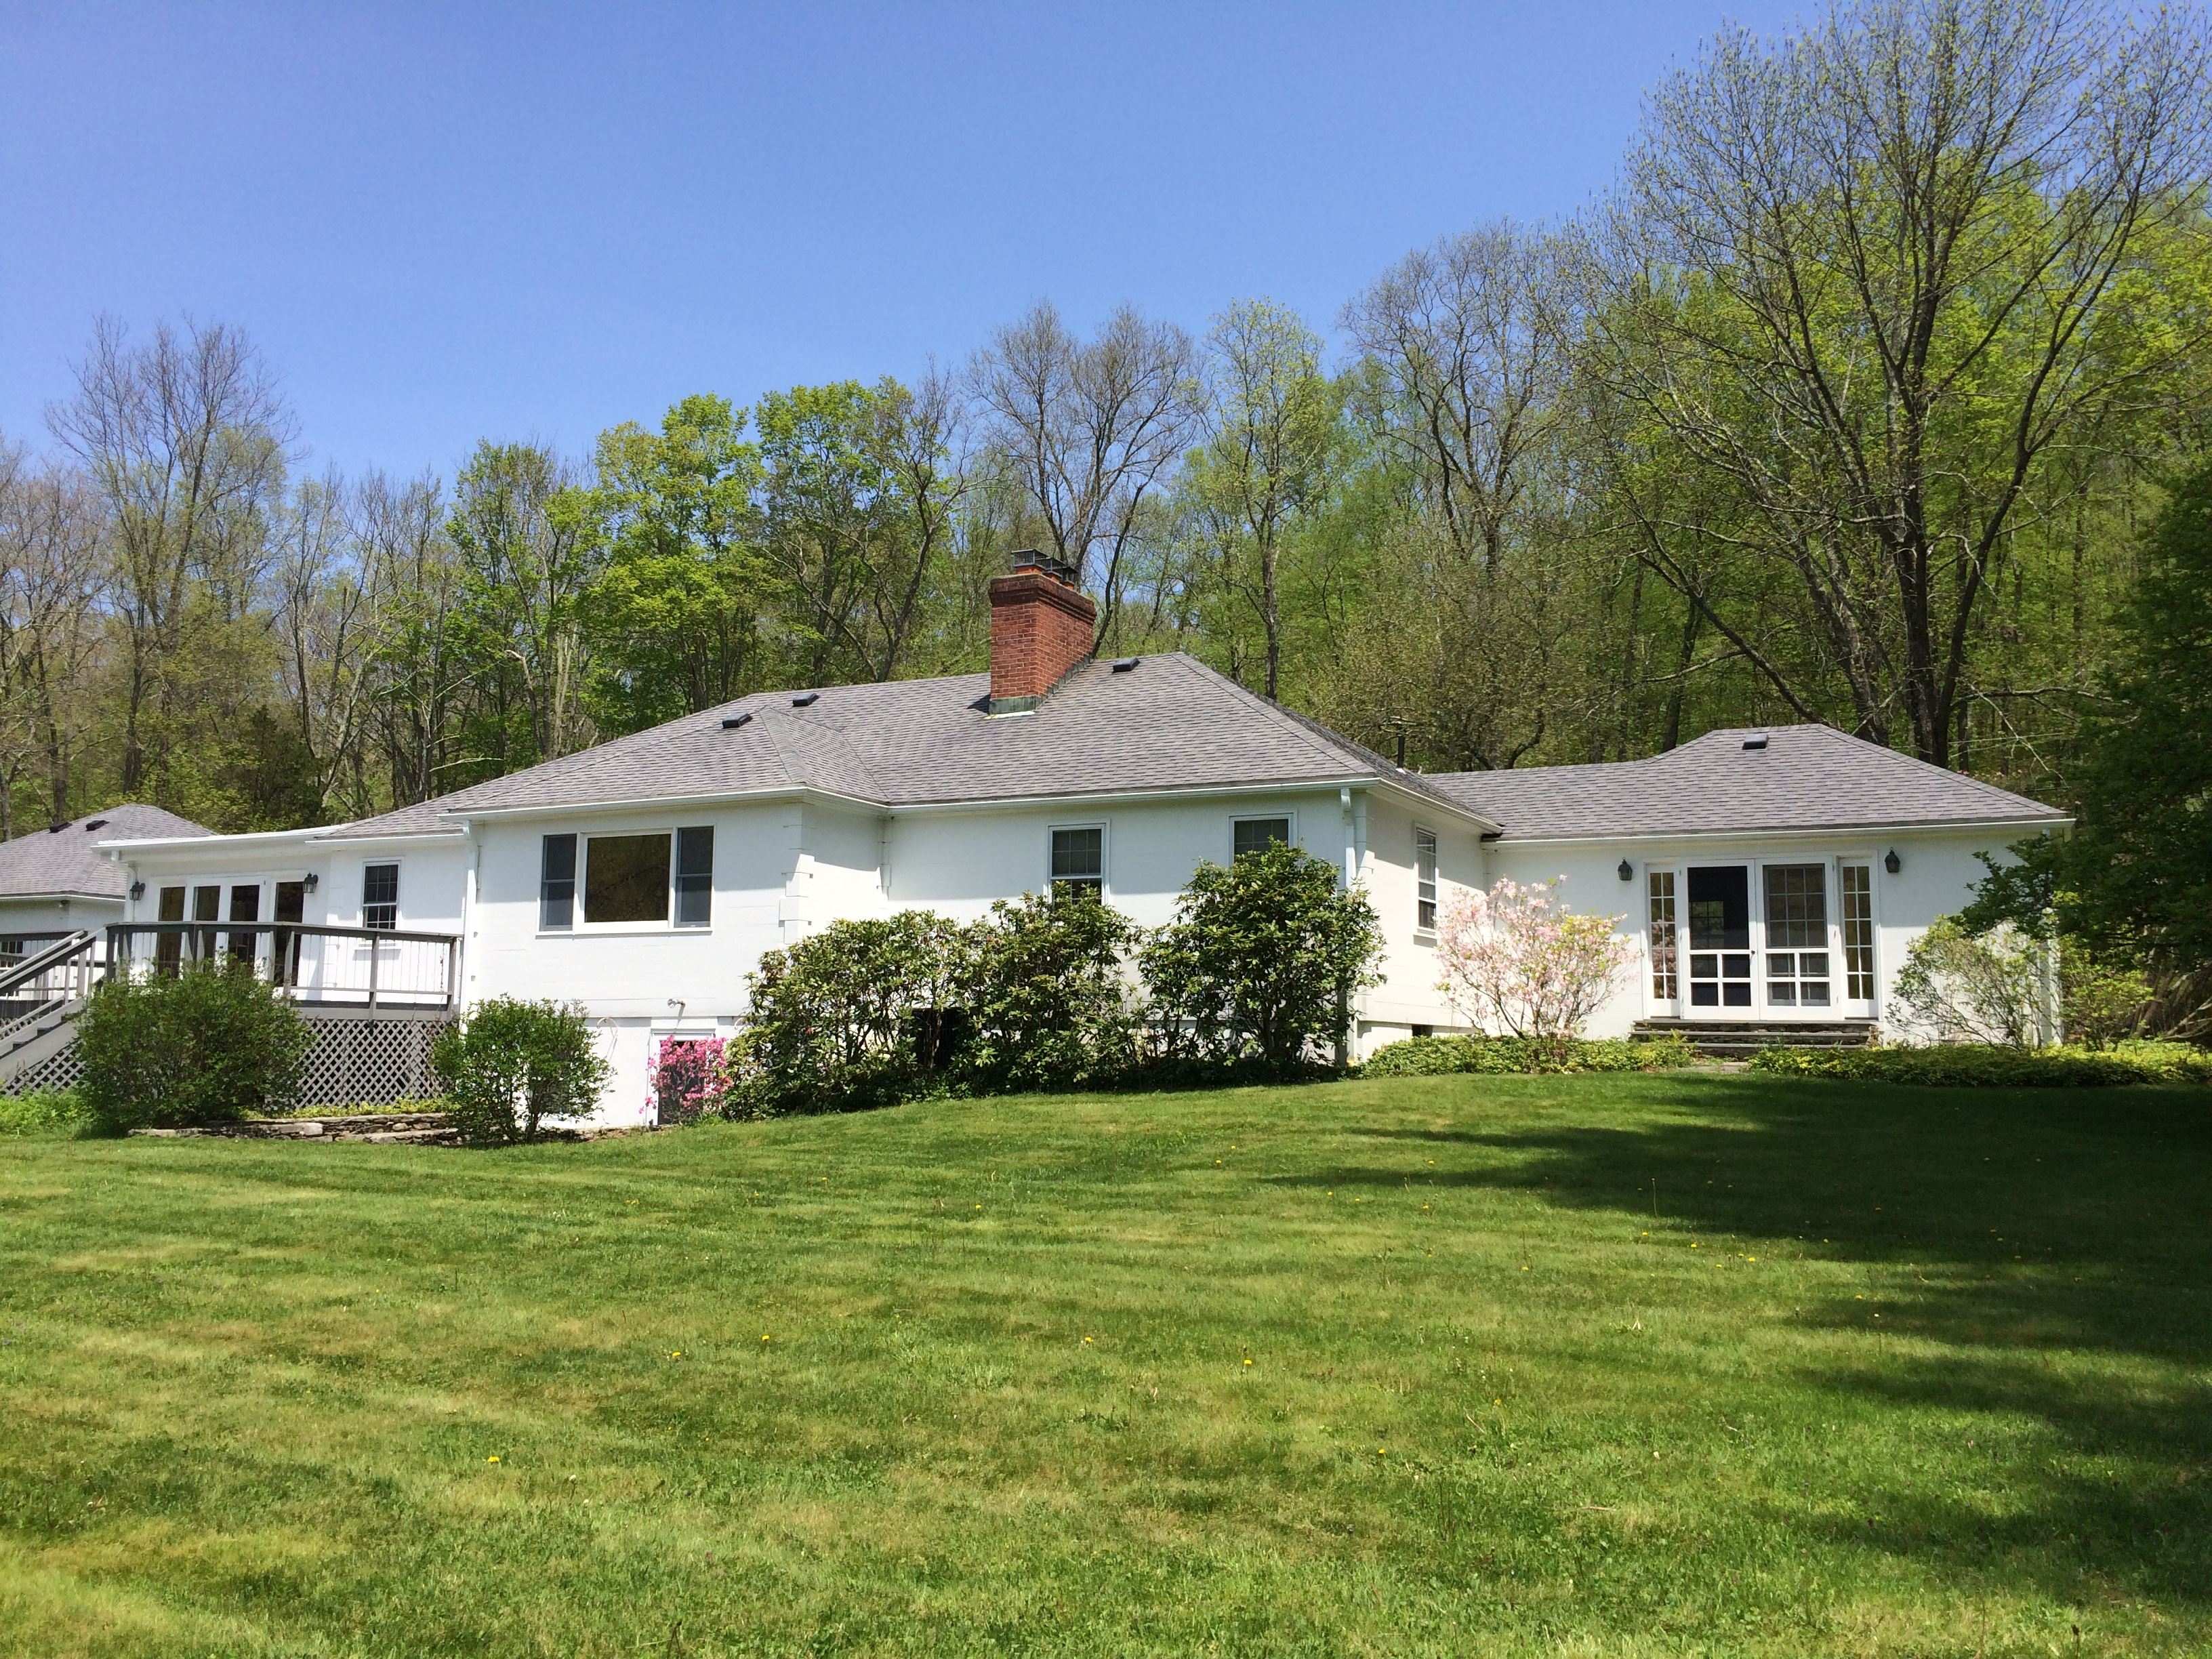 Single Family Home for Sale at Sophisticated Single Level on 78.51 Acres 285 Good Hill Rd Woodbury, Connecticut 06798 United States